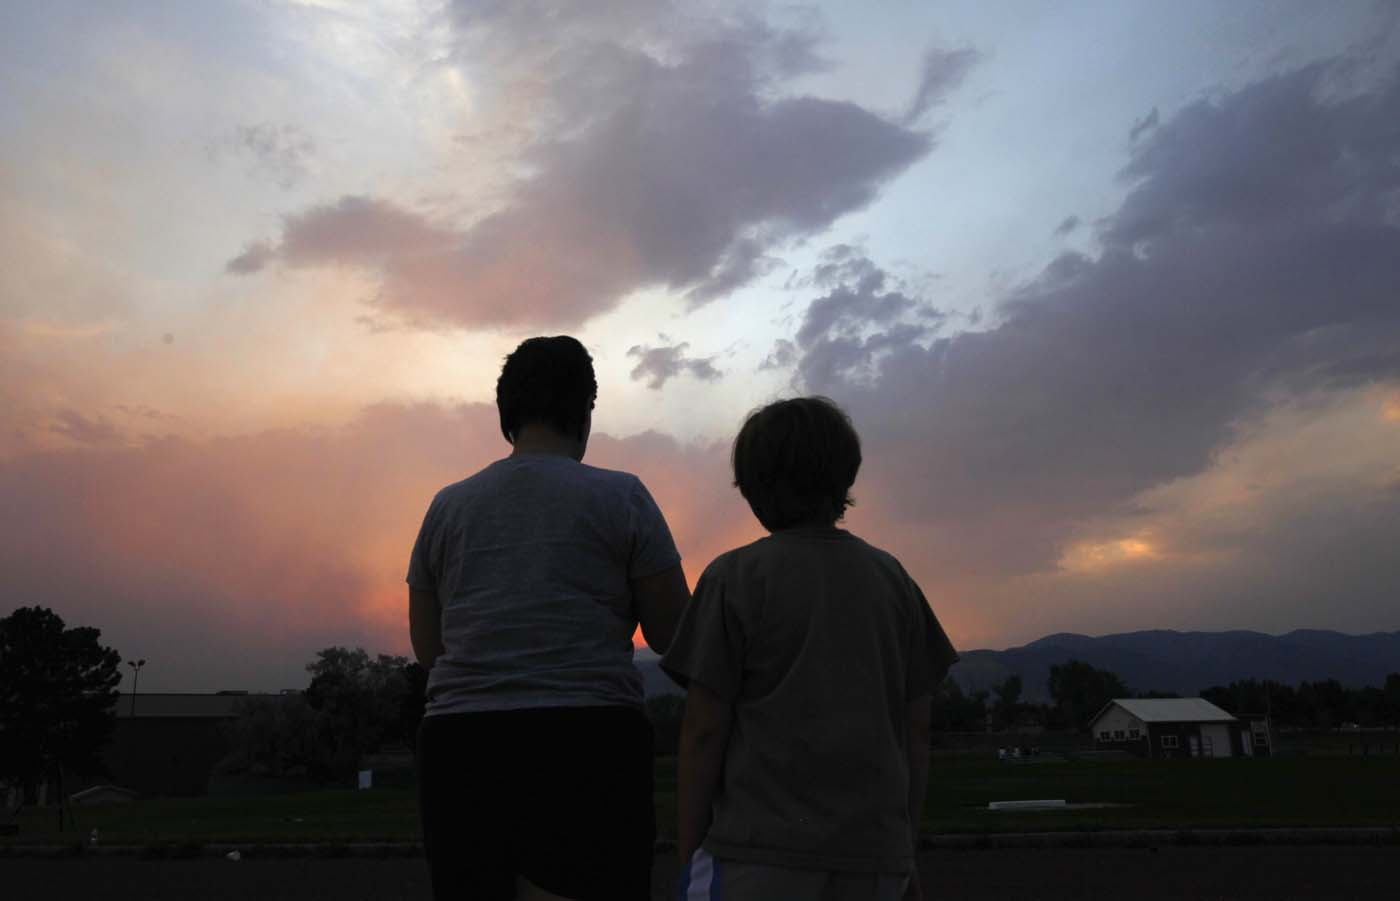 JUNE 24: People watch a giant smoke plume rising from the Waldo Canyon Fire during sunset, west of Colorado Springs June 24, 2012. The fast-growing wildfire that blew up overnight in Colorado has forced 11,000 people from their homes and was threatening popular summer camping grounds beneath Pikes Peak, billed as the most visited mountain in North America. (Rick Wilking/Reuters)